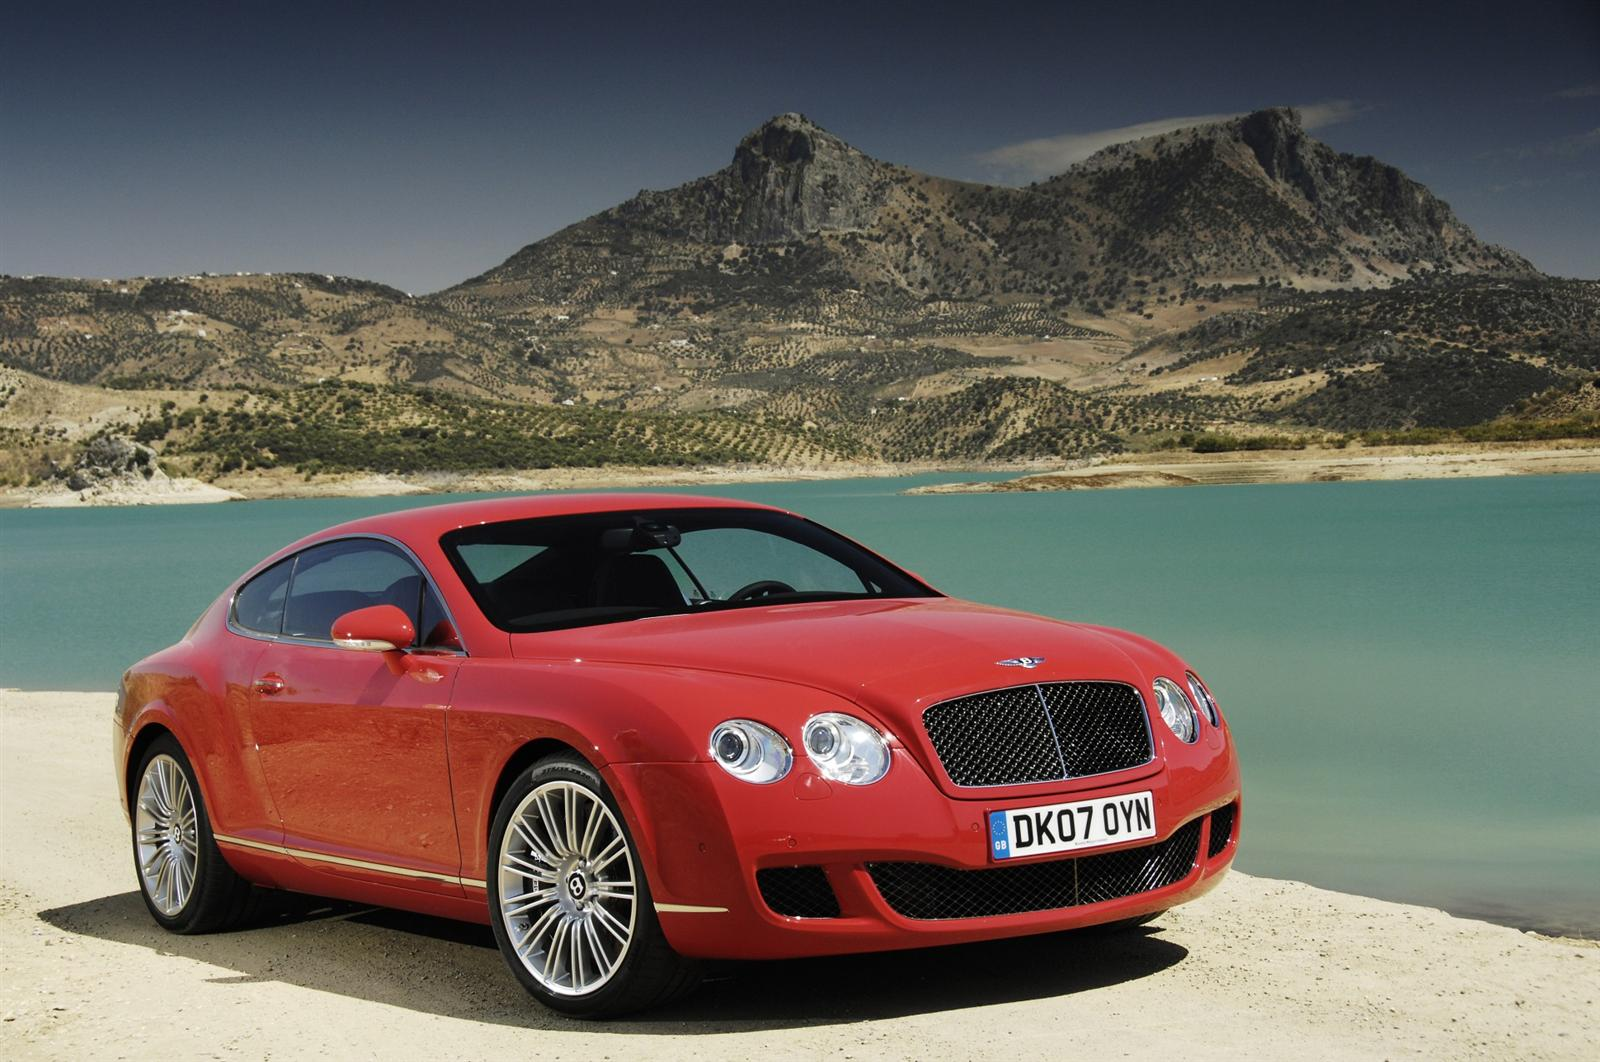 2010 bentley continental gtc speed information and photos bentley continental gtc speed 2010 9 vanachro Image collections